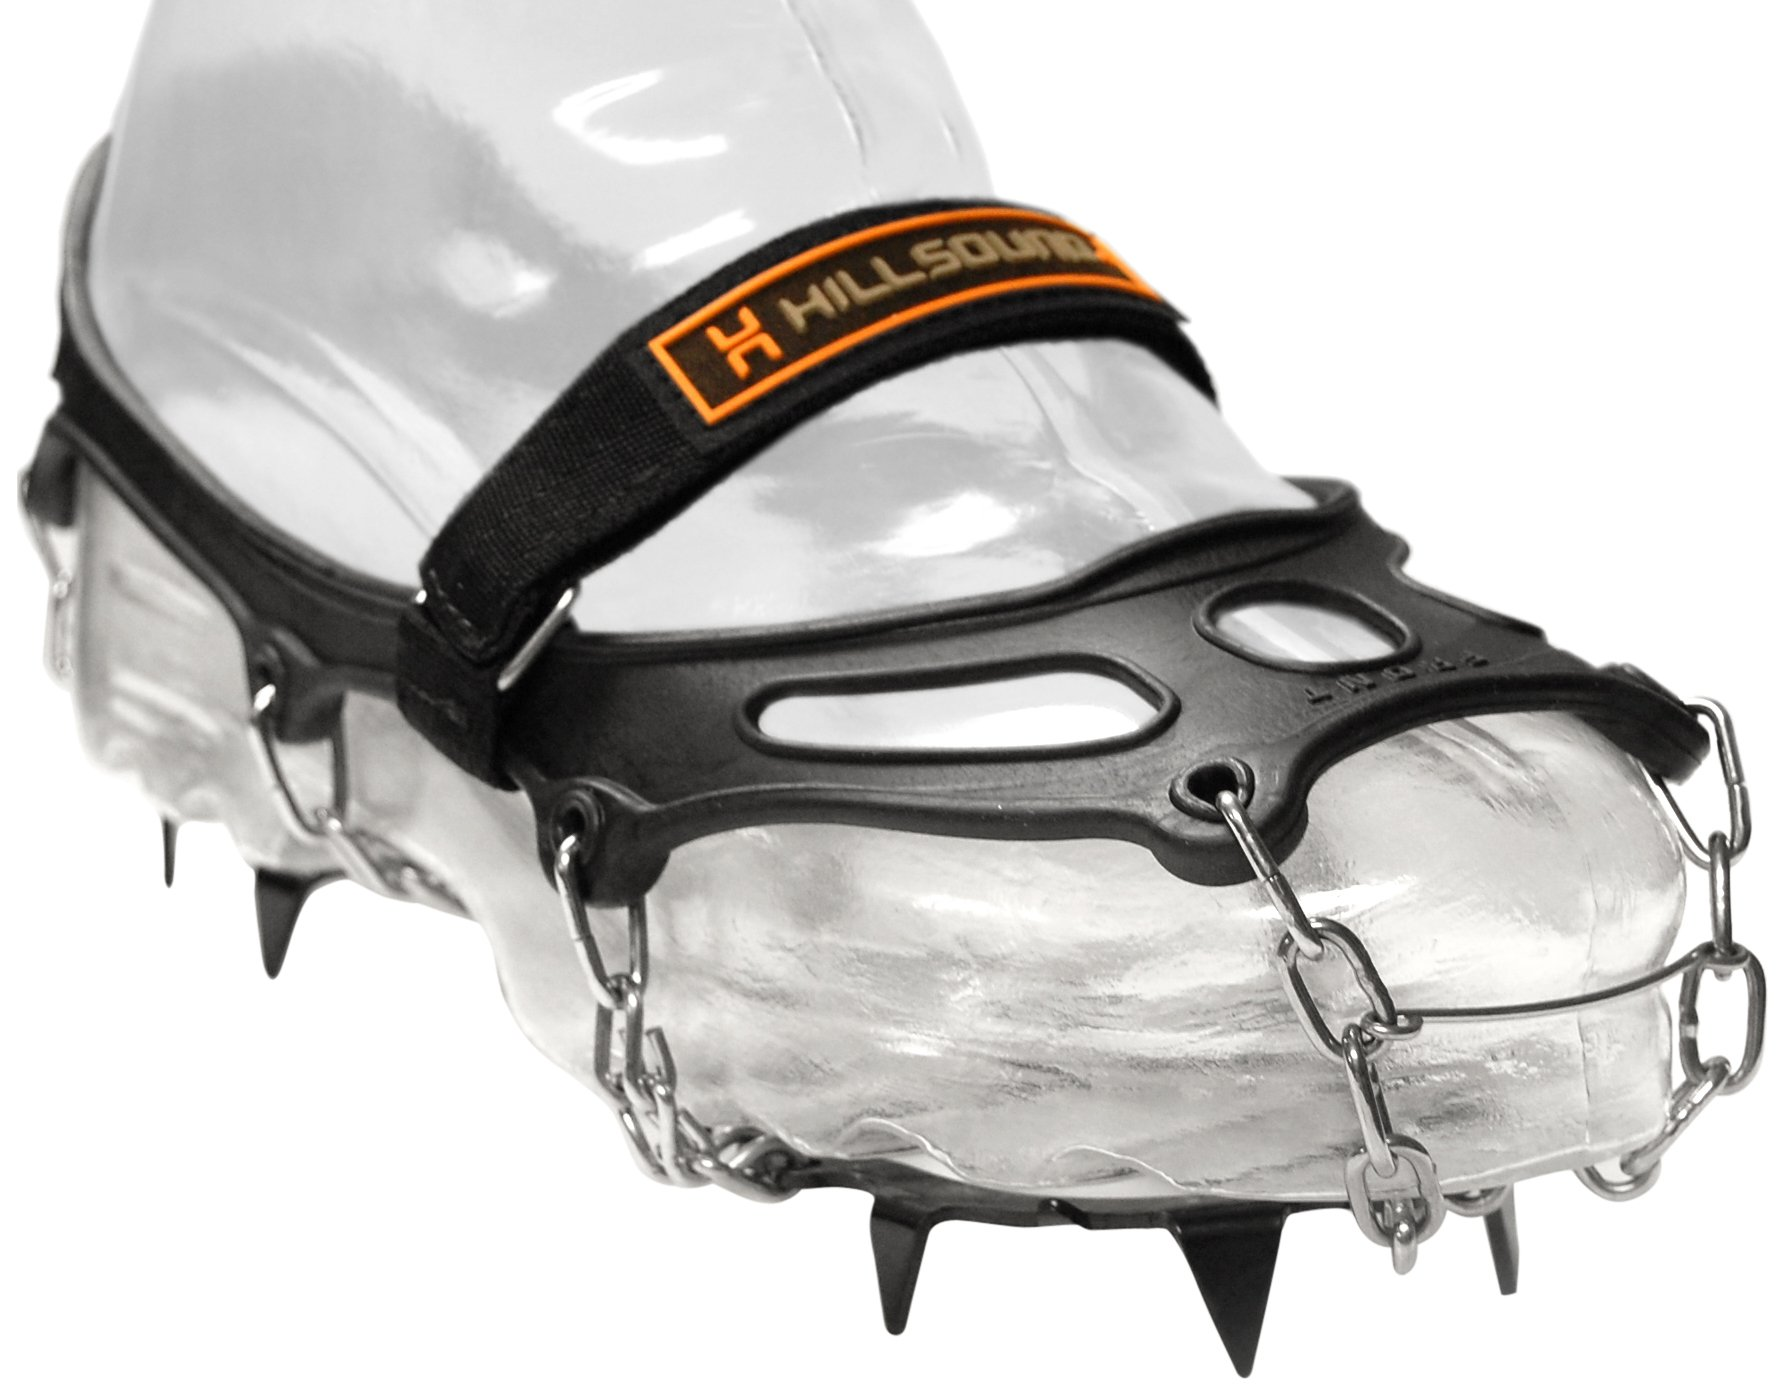 Hillsound Trail Crampon Traction Device, Black, Small